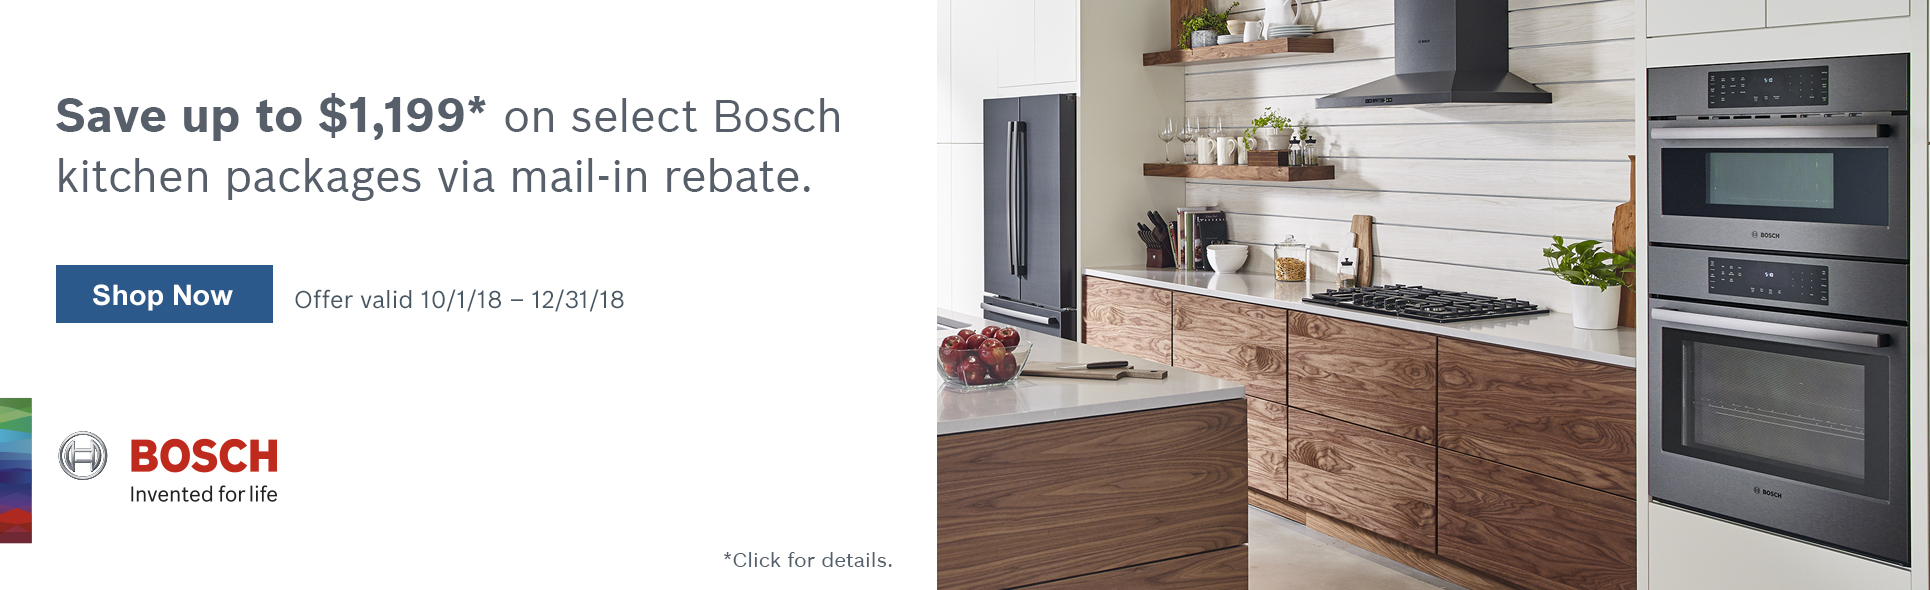 Save up to $1199 with qualified Bosch Appliance purchase